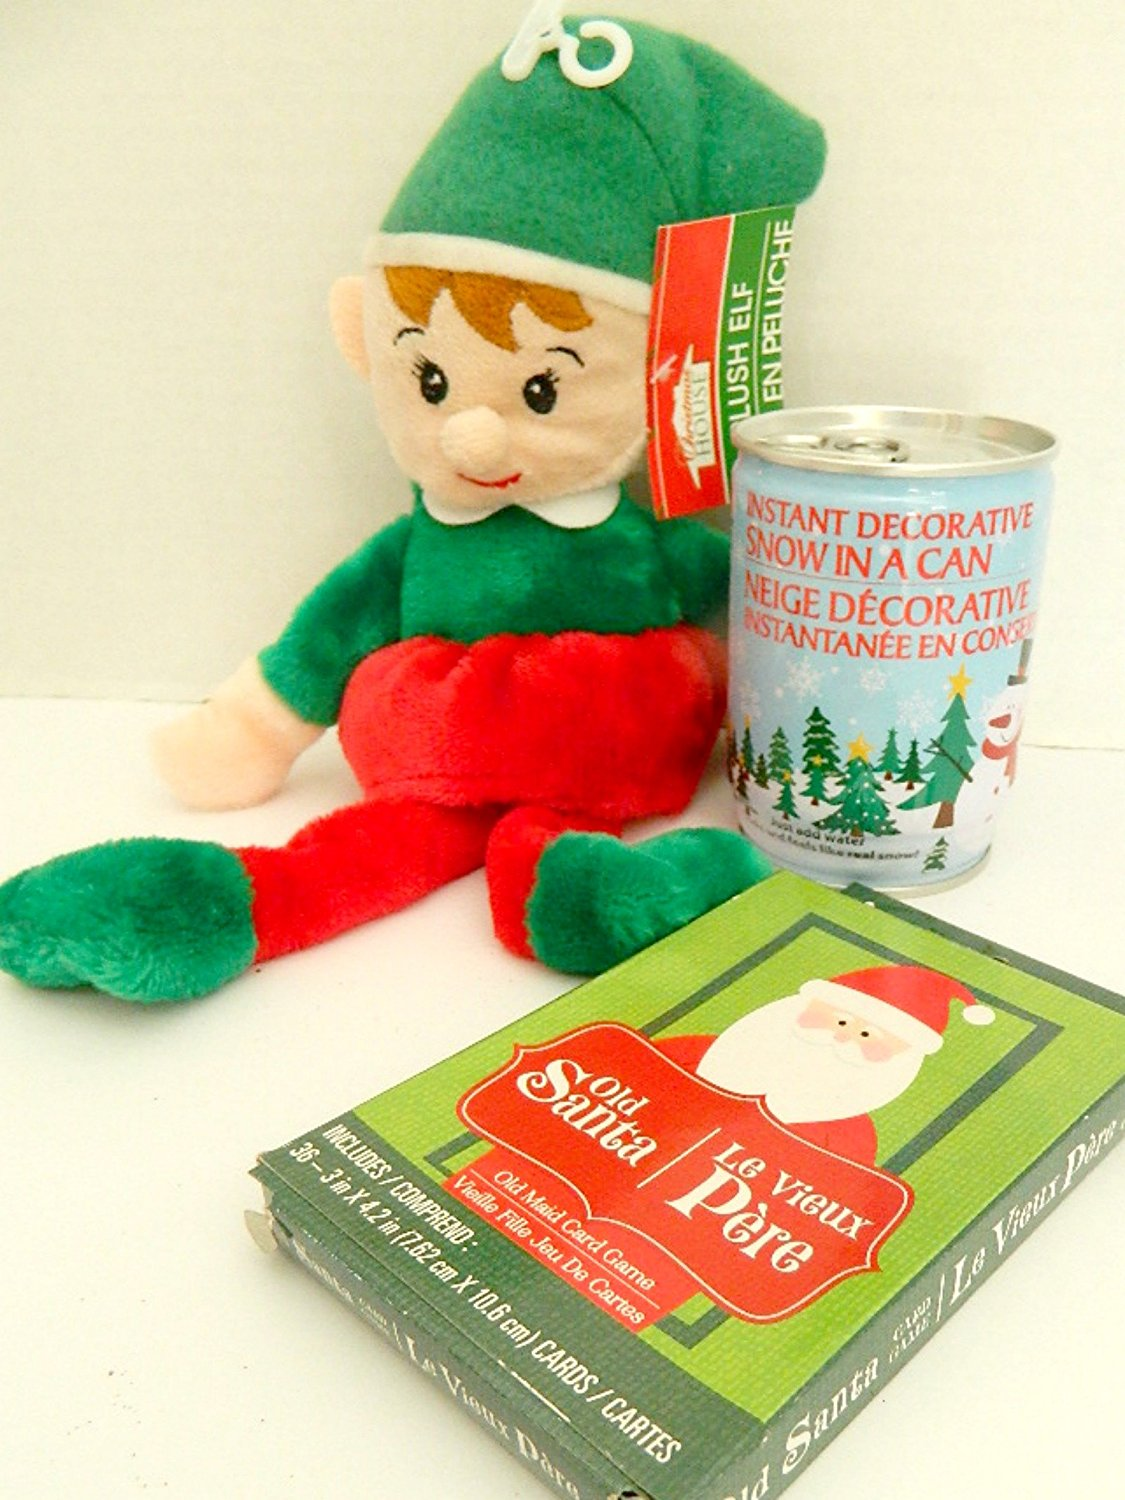 3 pc Christmas Elf Boy Plush Toy, Crazy Eights Card Game and Instant Snow Bundle